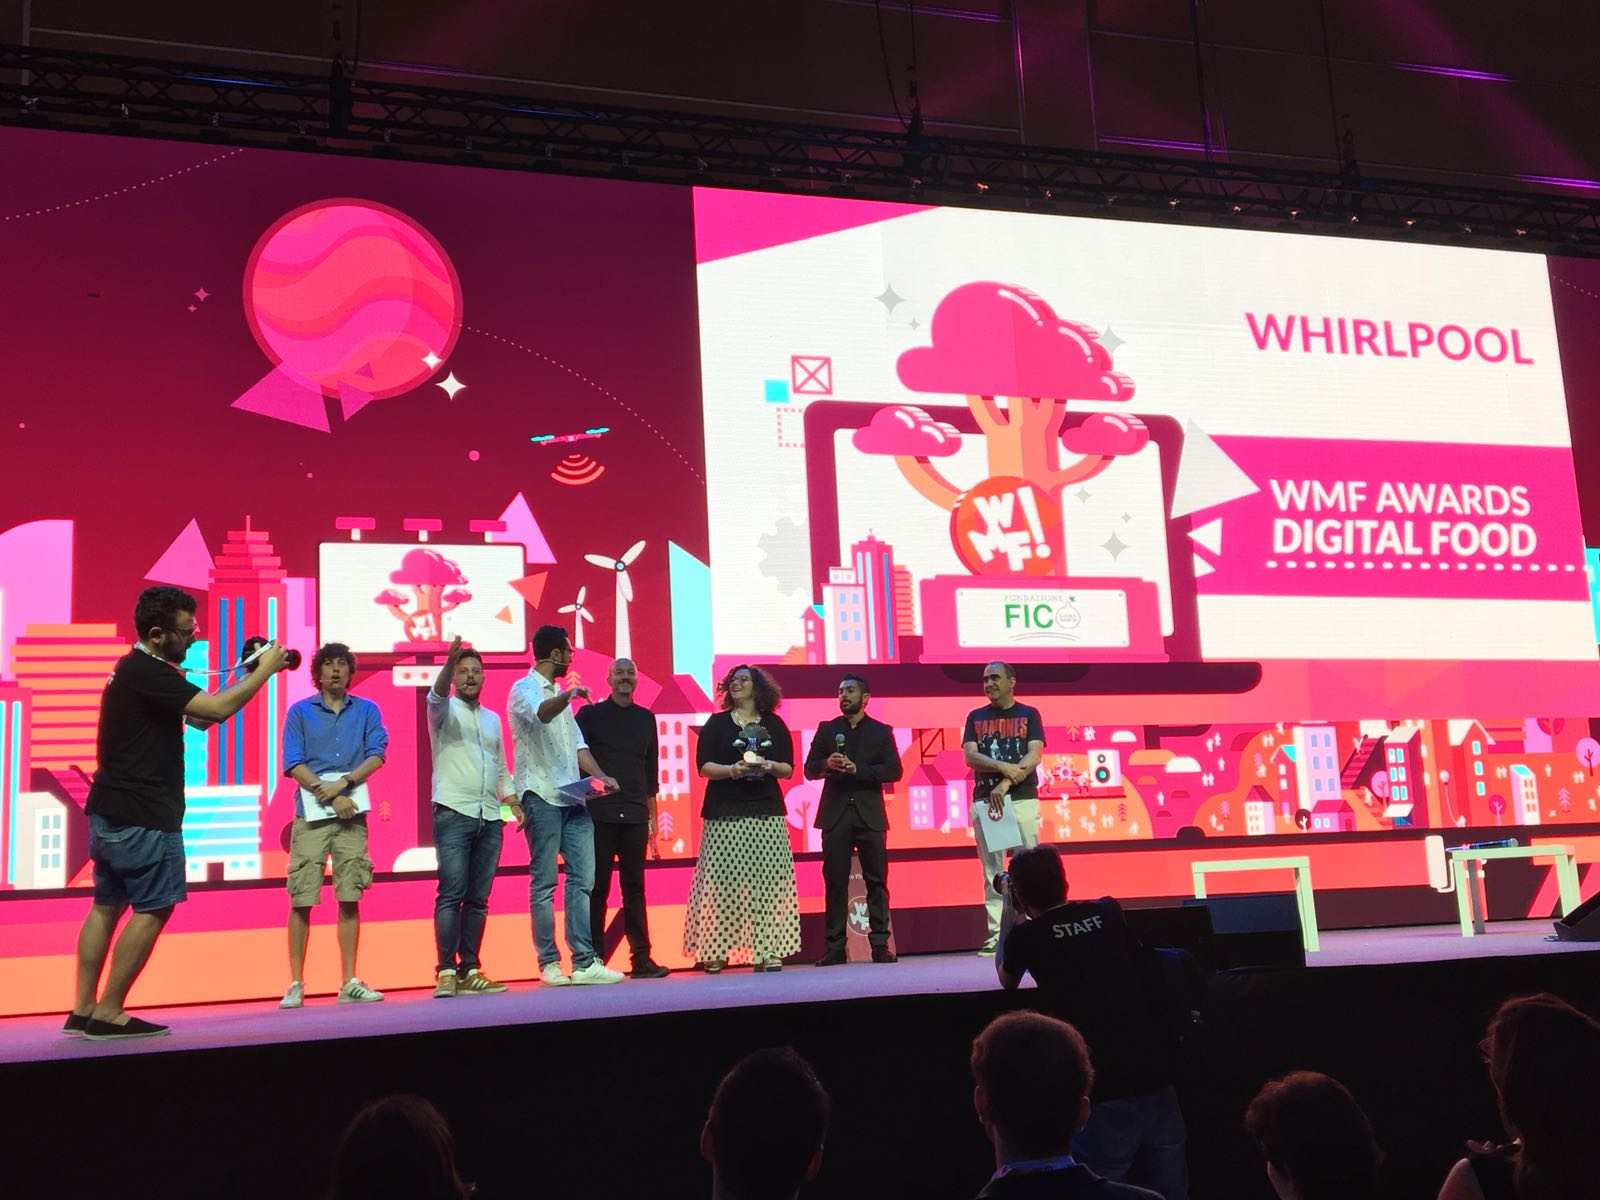 Whirlpool wins Web Marketing Festival award